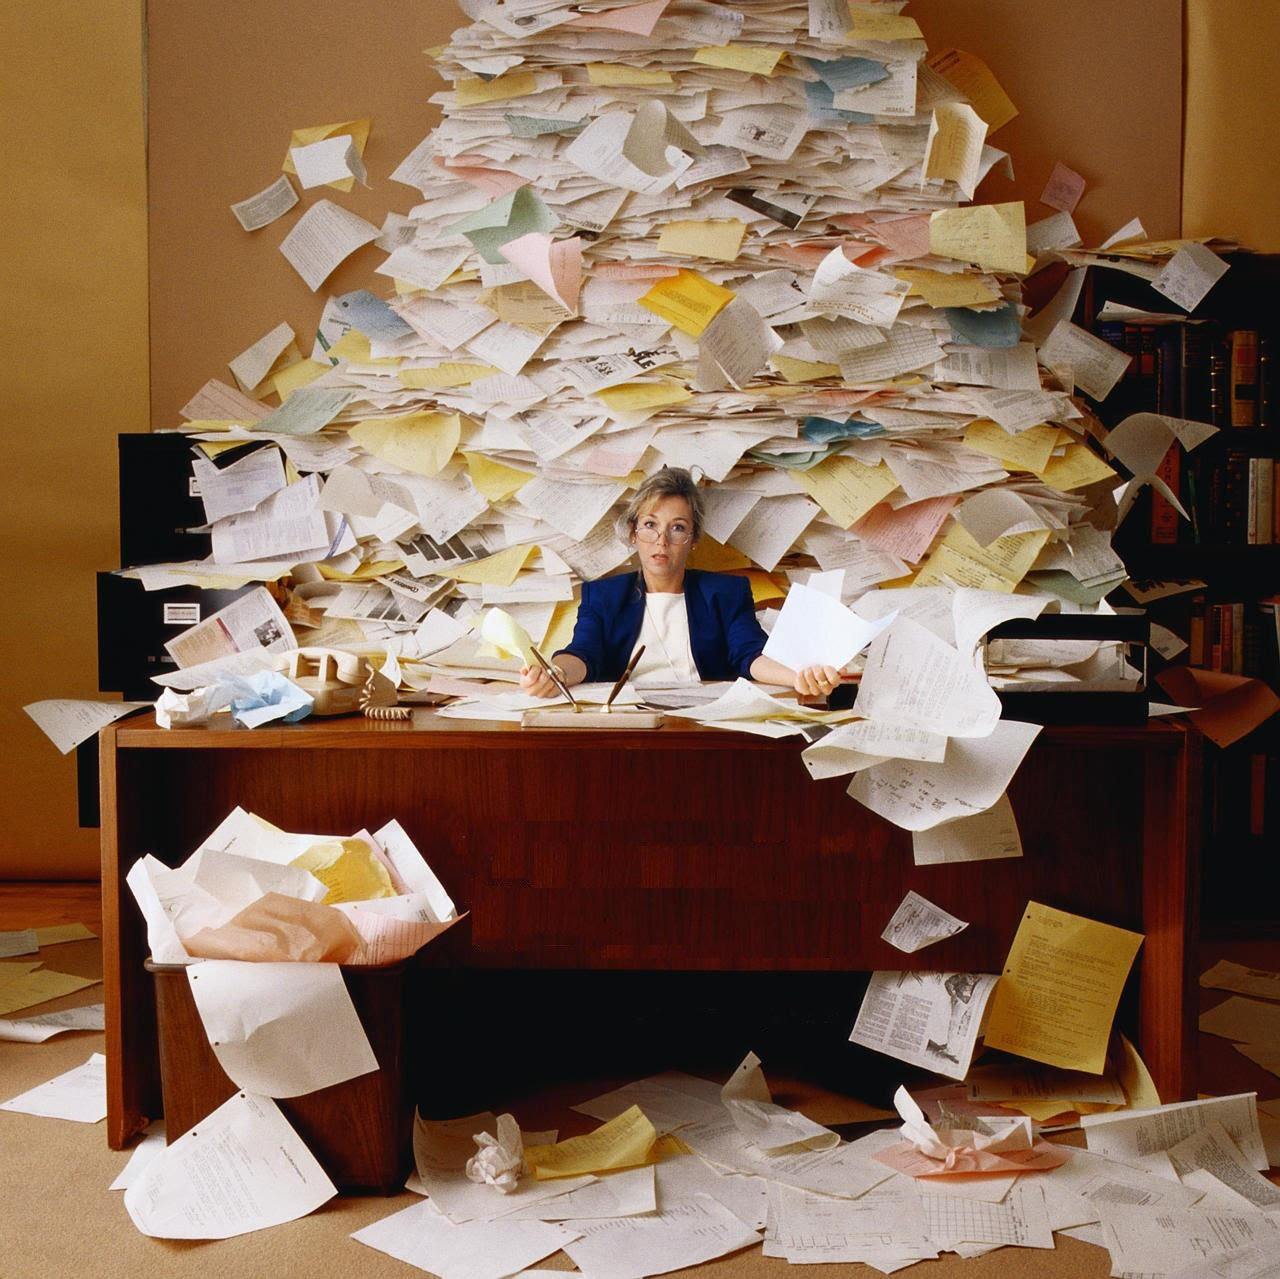 6 SIGNS YOU MAY BE A WORKAHOLIC